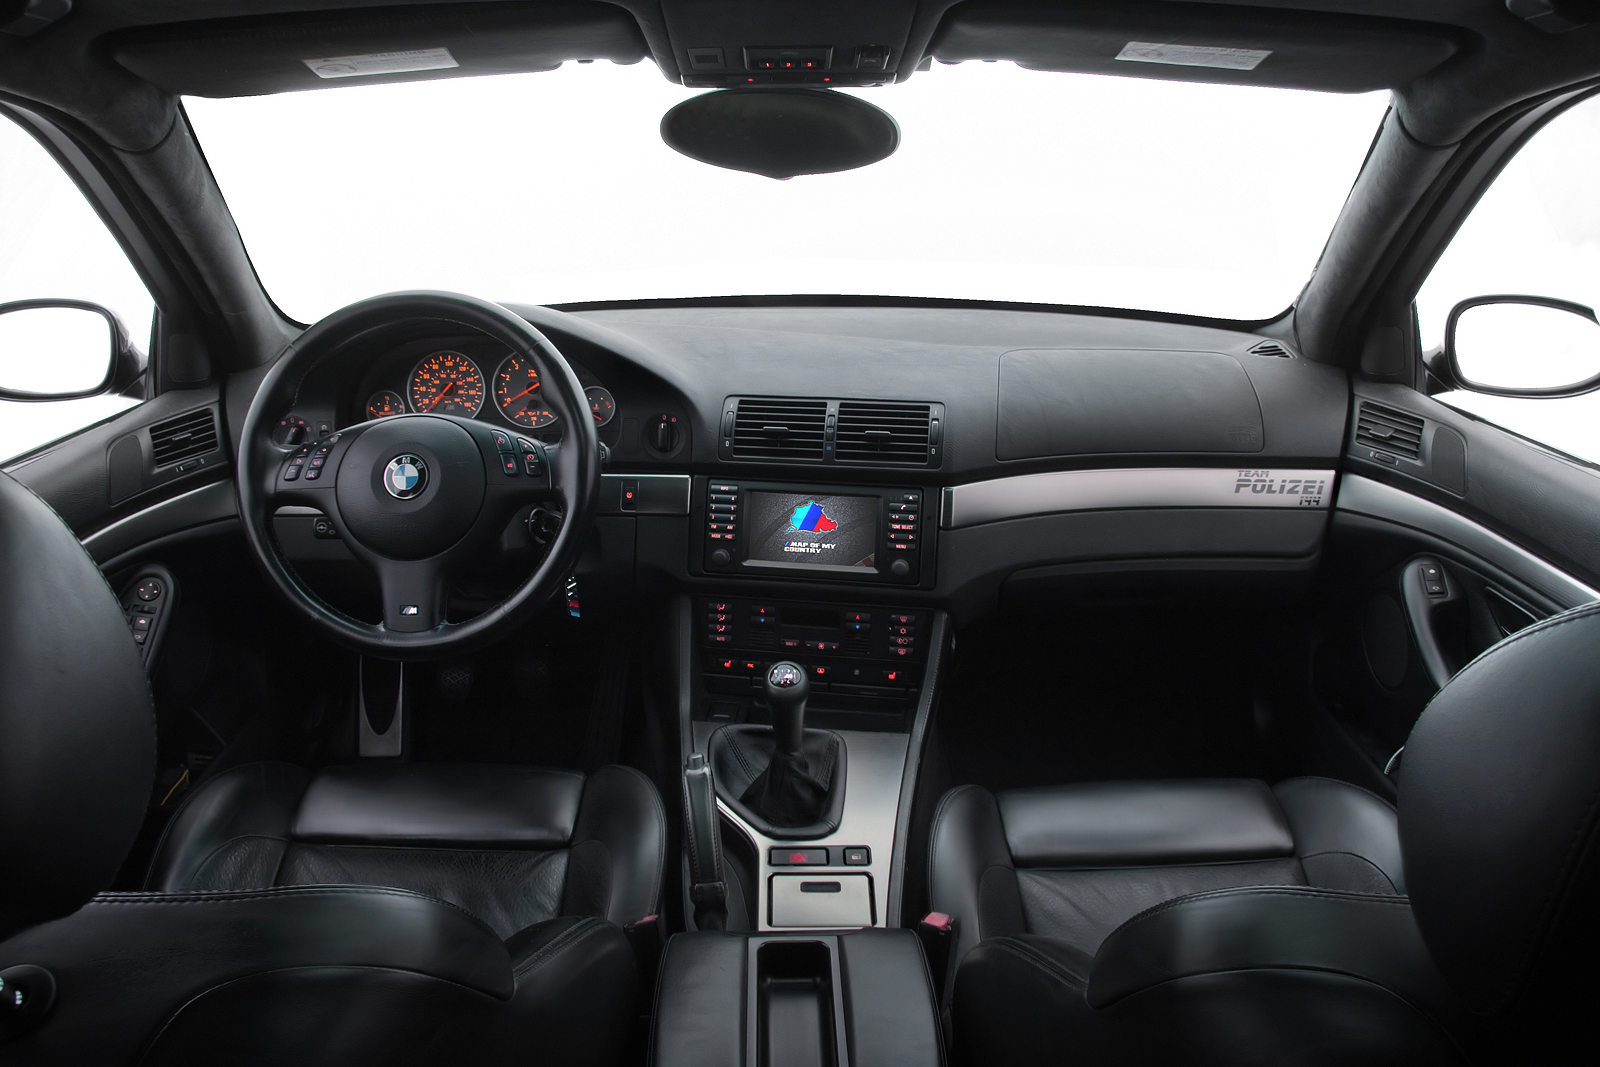 2001 Bmw M5 (e39) – pictures, information and specs - Auto-Database.com